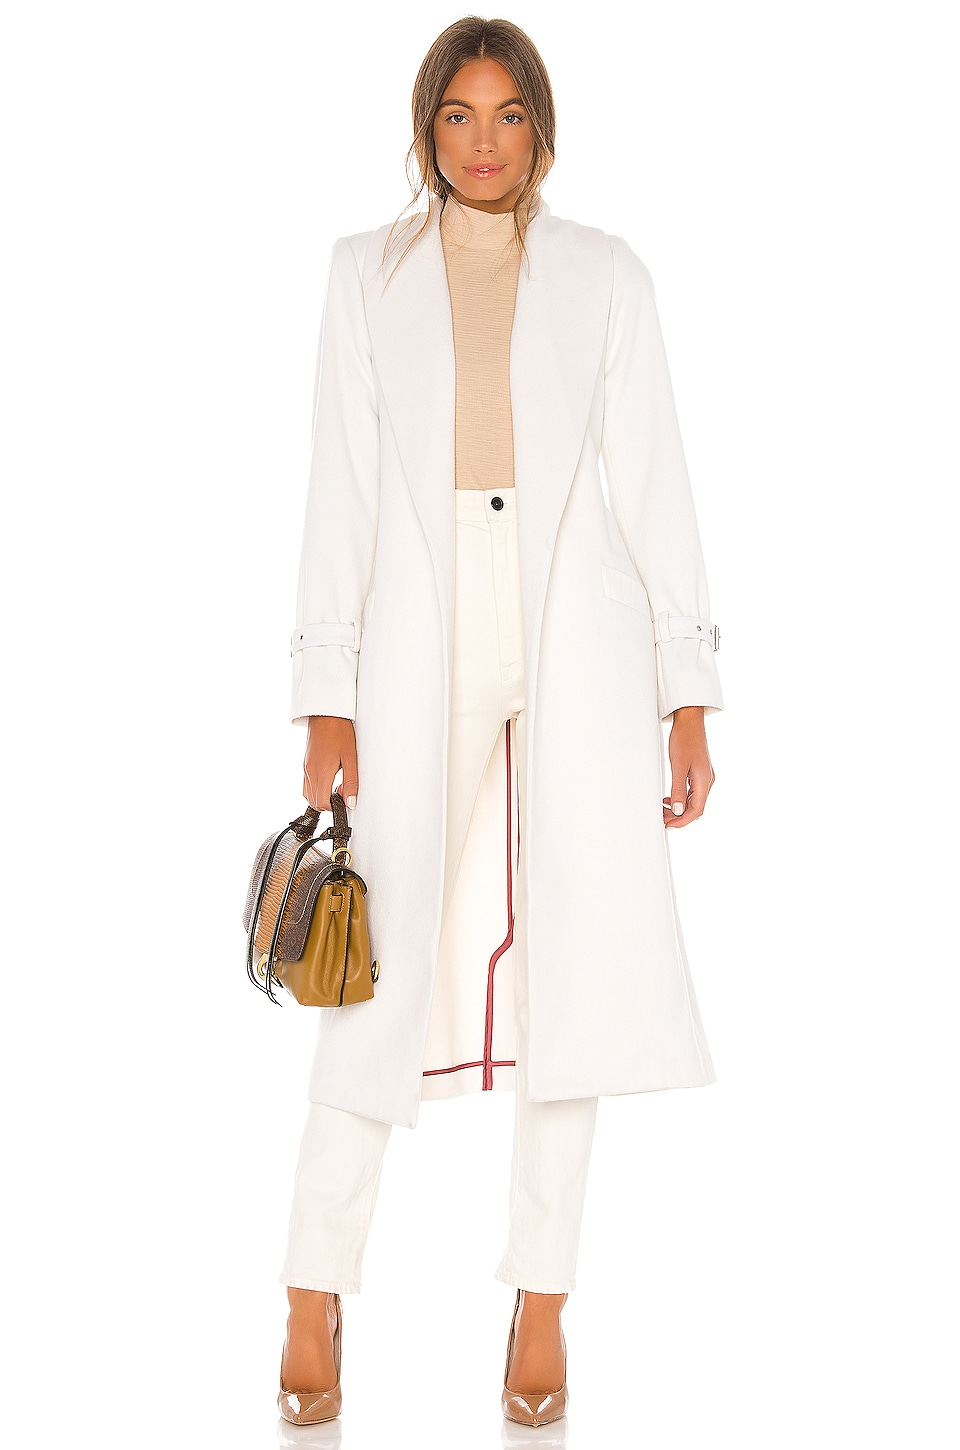 PAIGE Greylin Wool Coat in Gardenia